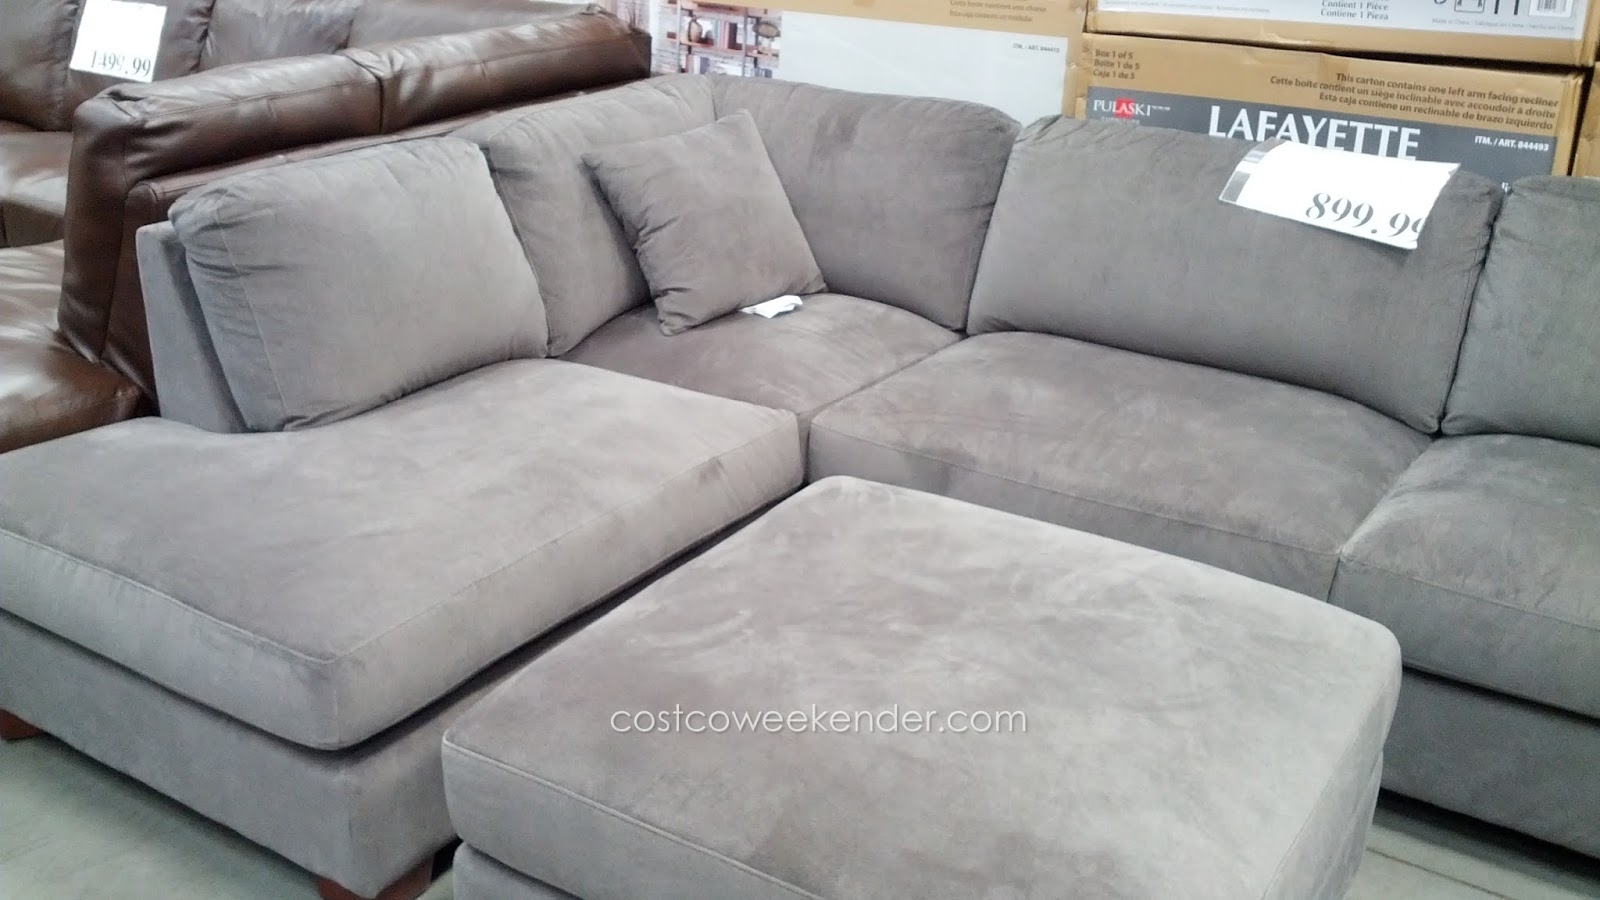 Emerald Home Furnishings Bianca 3-Piece Sectional Set | Costco Weekender regarding Cohen Down 2 Piece Sectionals (Image 7 of 30)